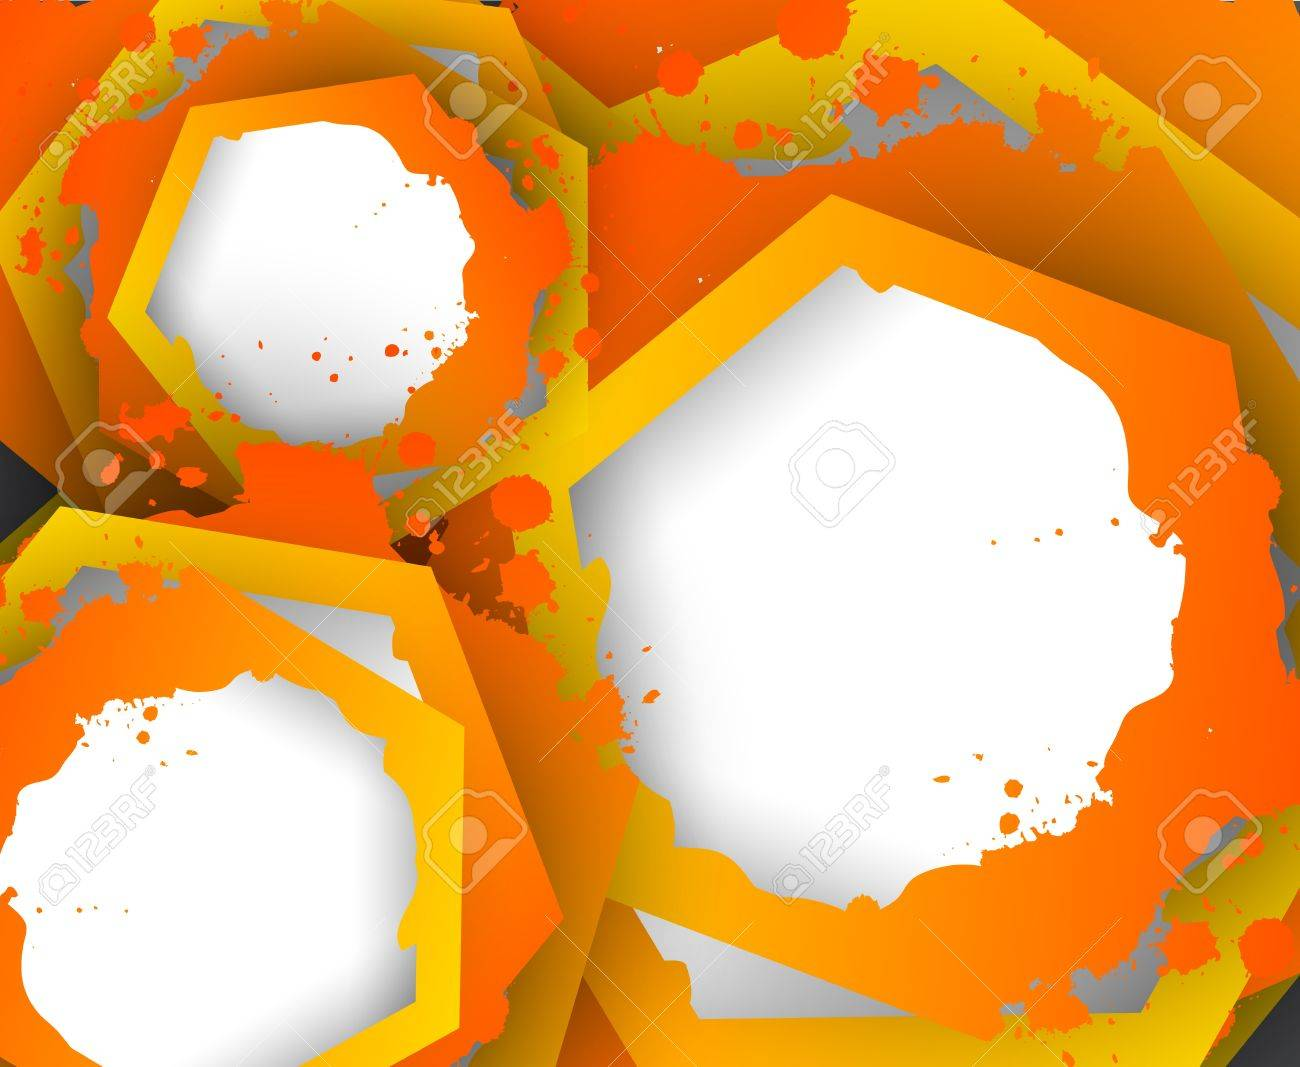 Abstract colorful background with hexagons  Bright illustration Stock Vector - 18840636